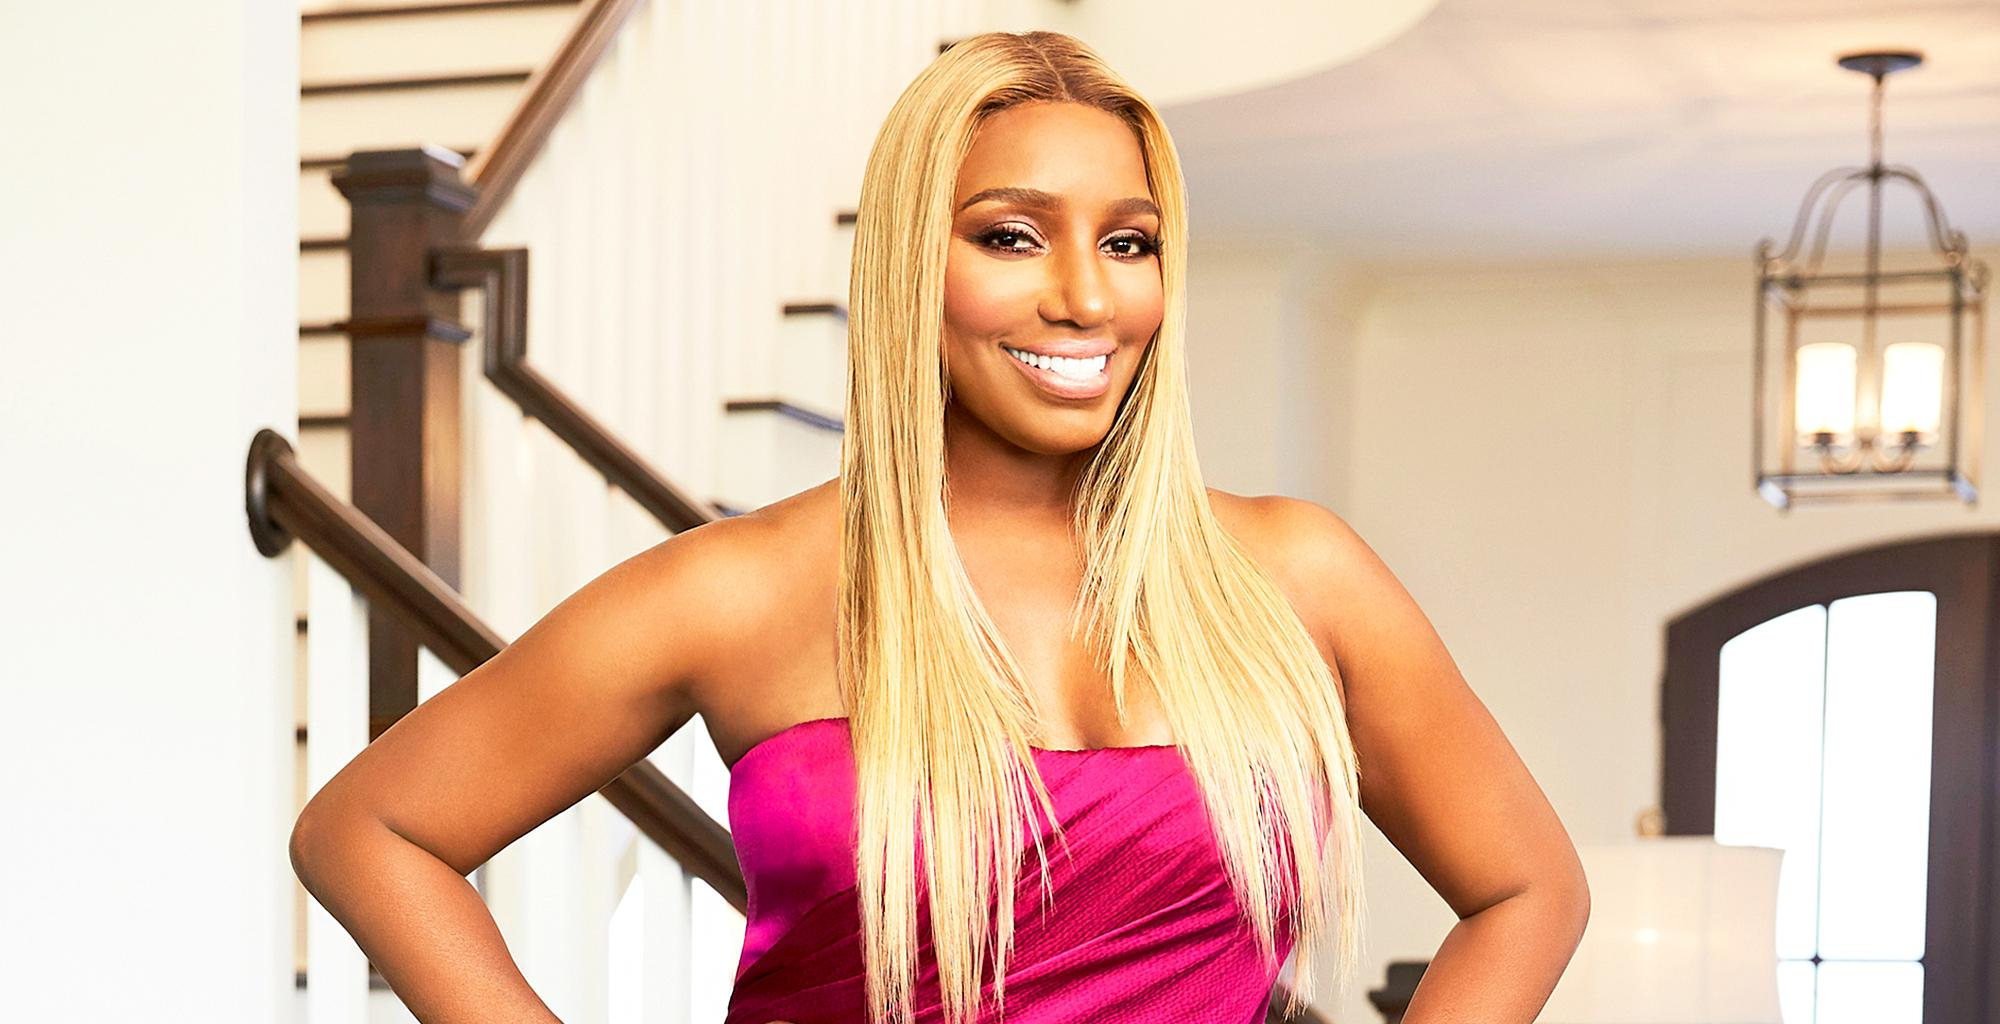 NeNe Leakes' Fans Can Catch Her On Access Daily Today - People Are Happy To See Her So Busy